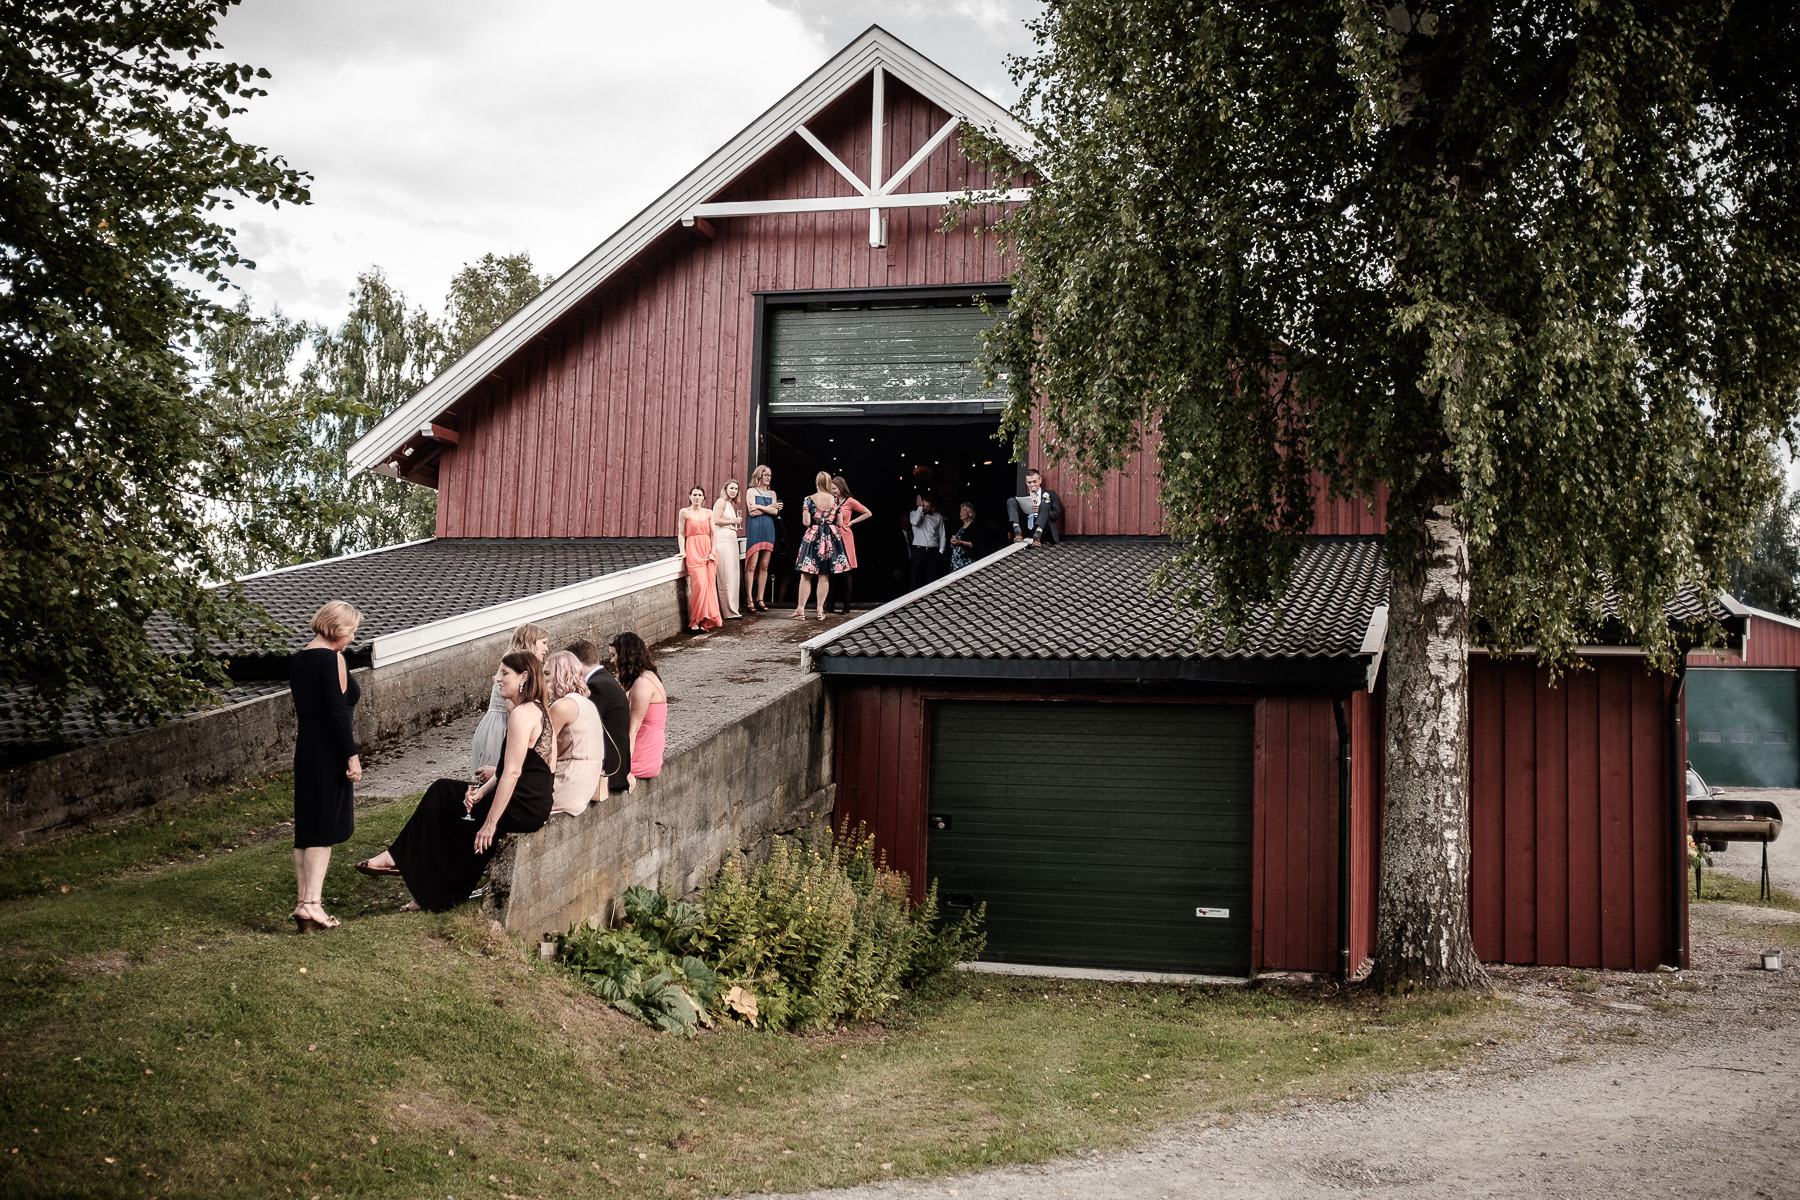 Click to enlarge image elise-christoffer-eidsvoll-ottossonphoto-1038.jpg